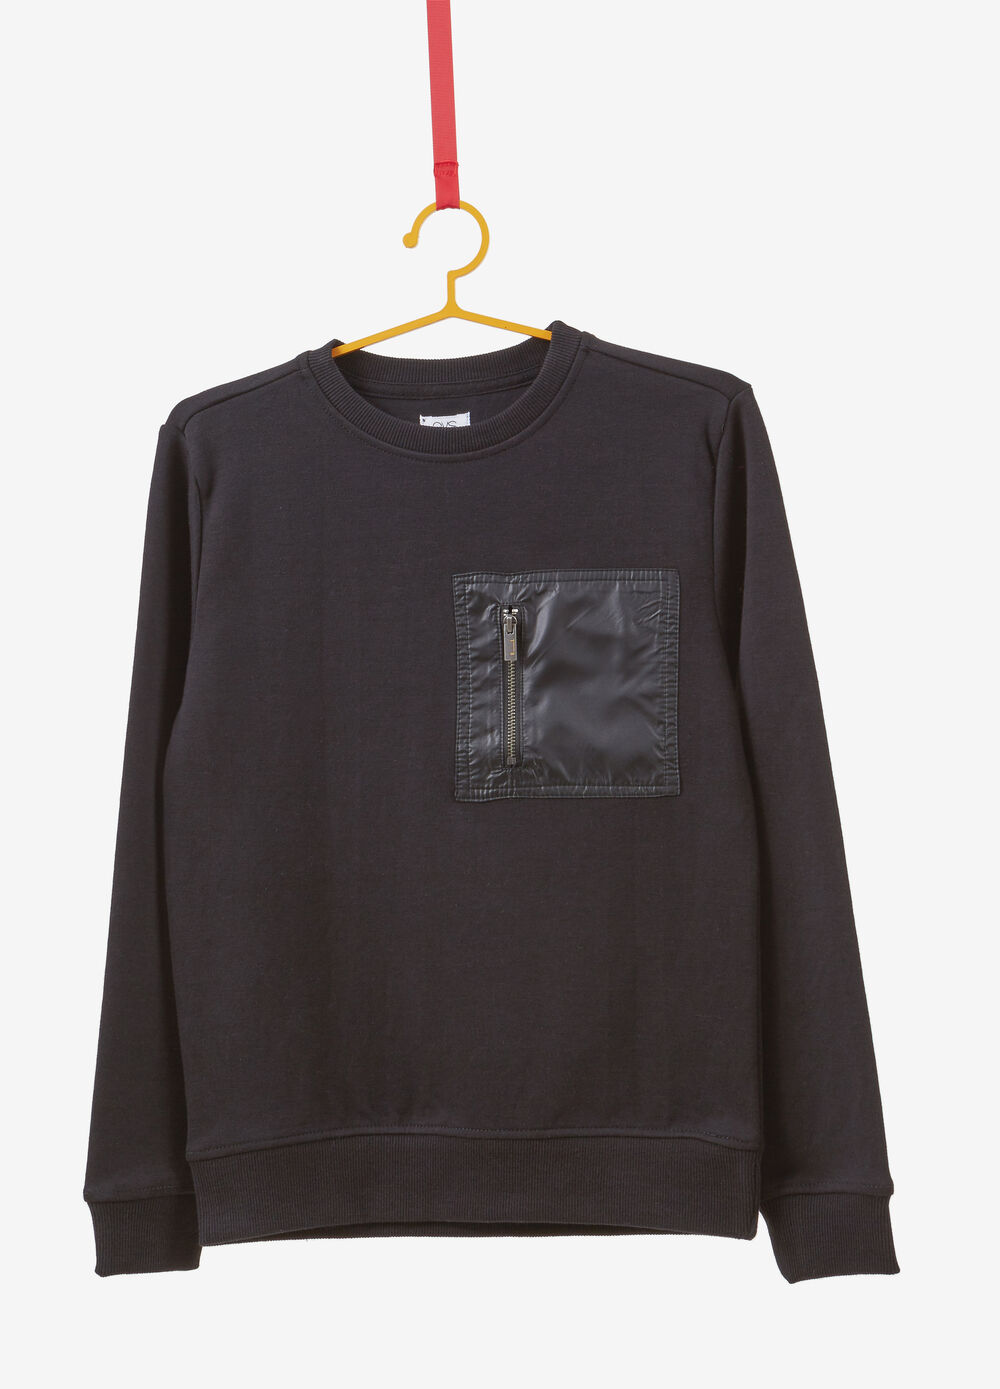 Cotton blend sweatshirt with pocket on the front